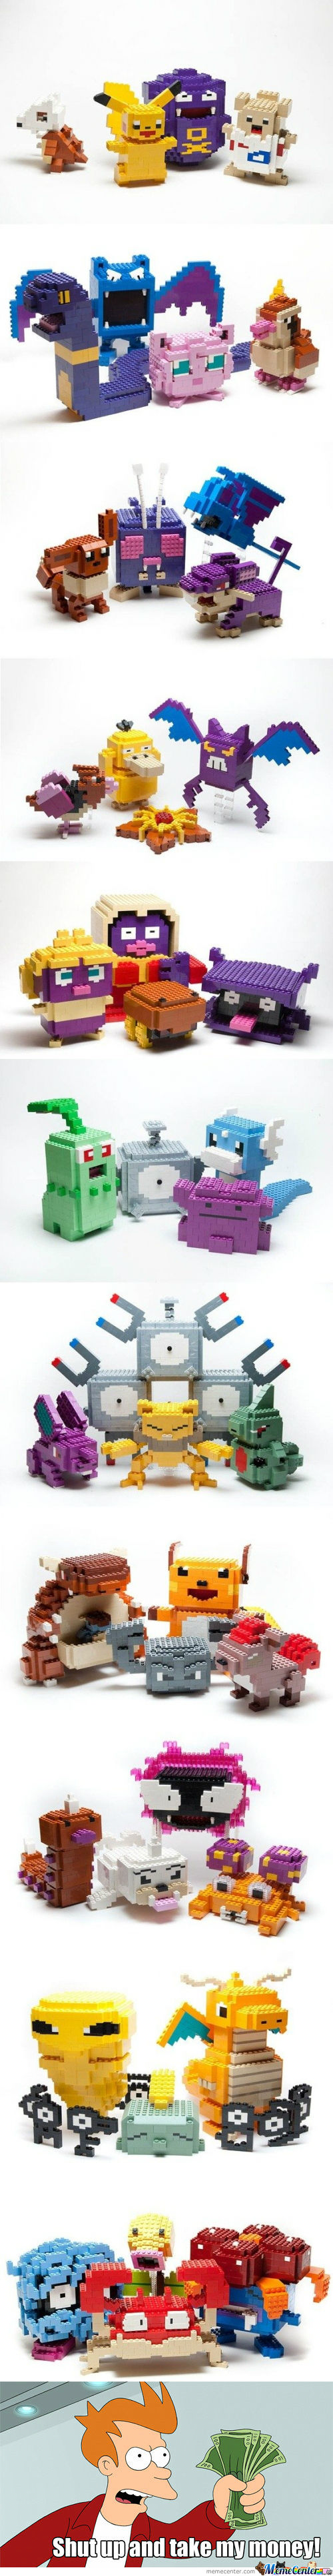 [RMX] Awesome lego sculptures - Pokemon